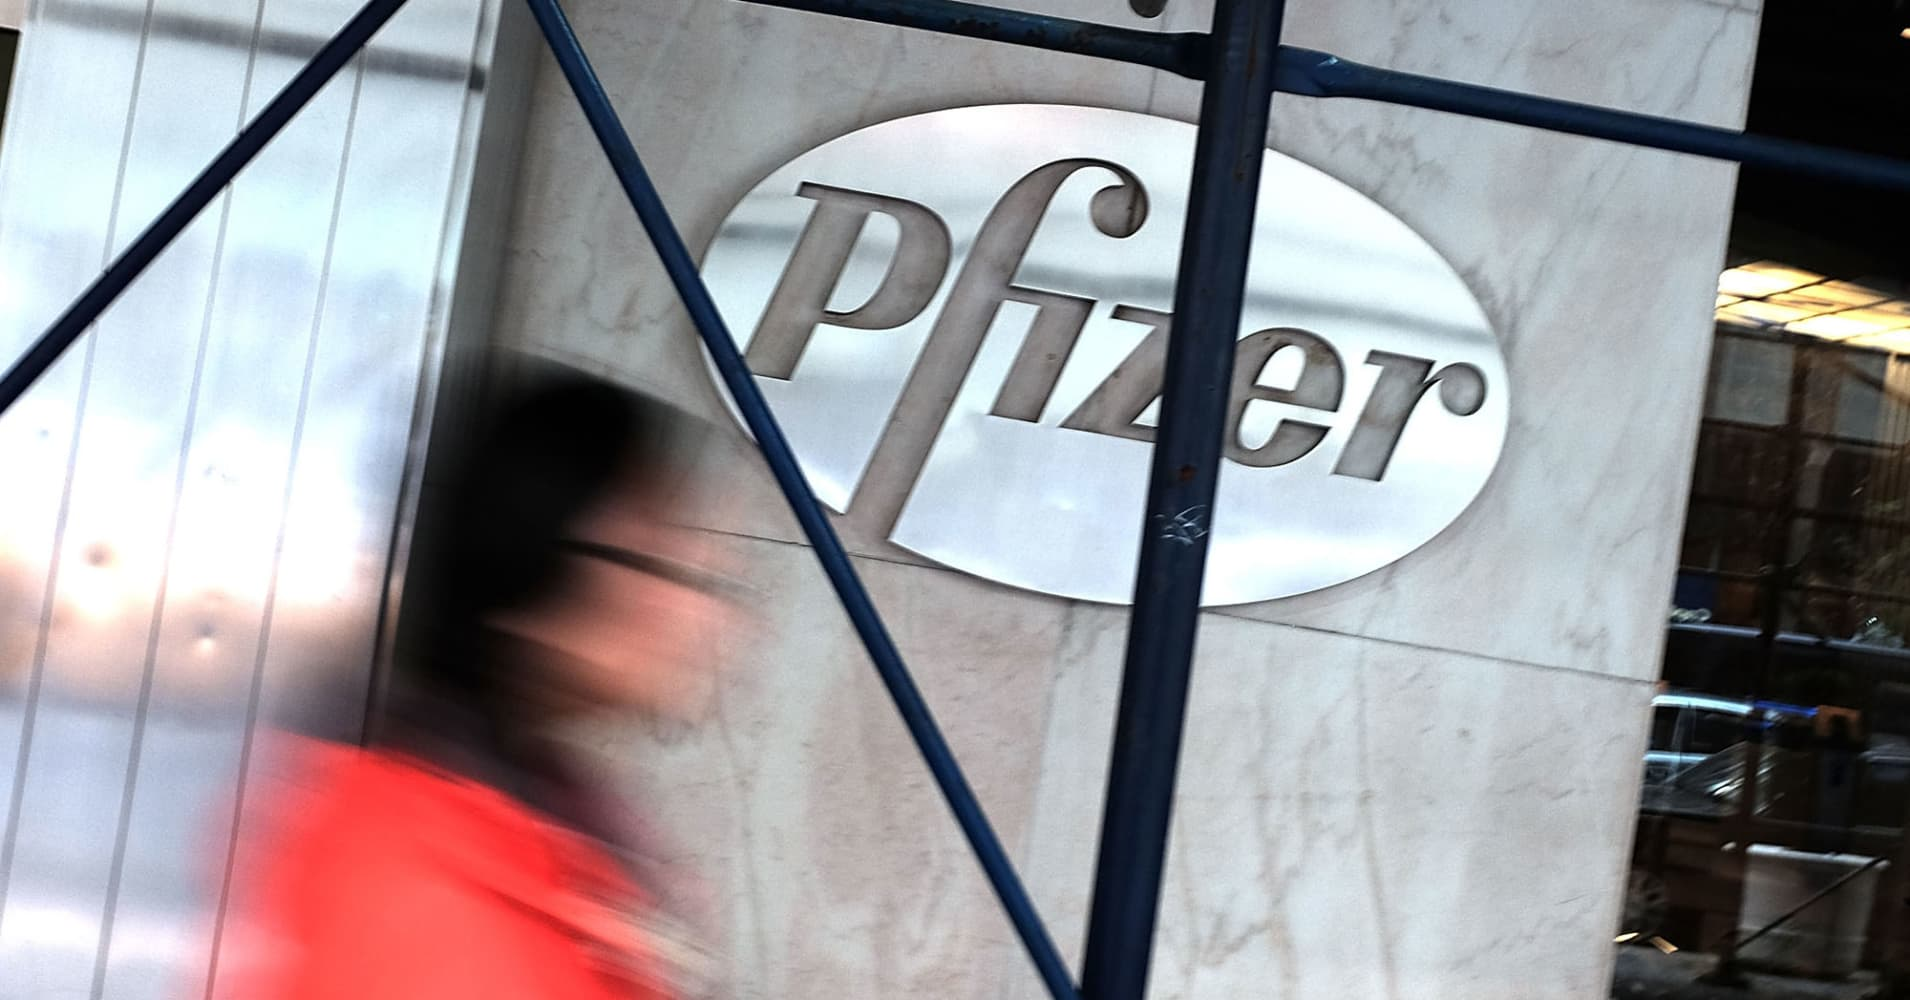 Pfizer offers early retirement ahead of layoffs in memo to employees